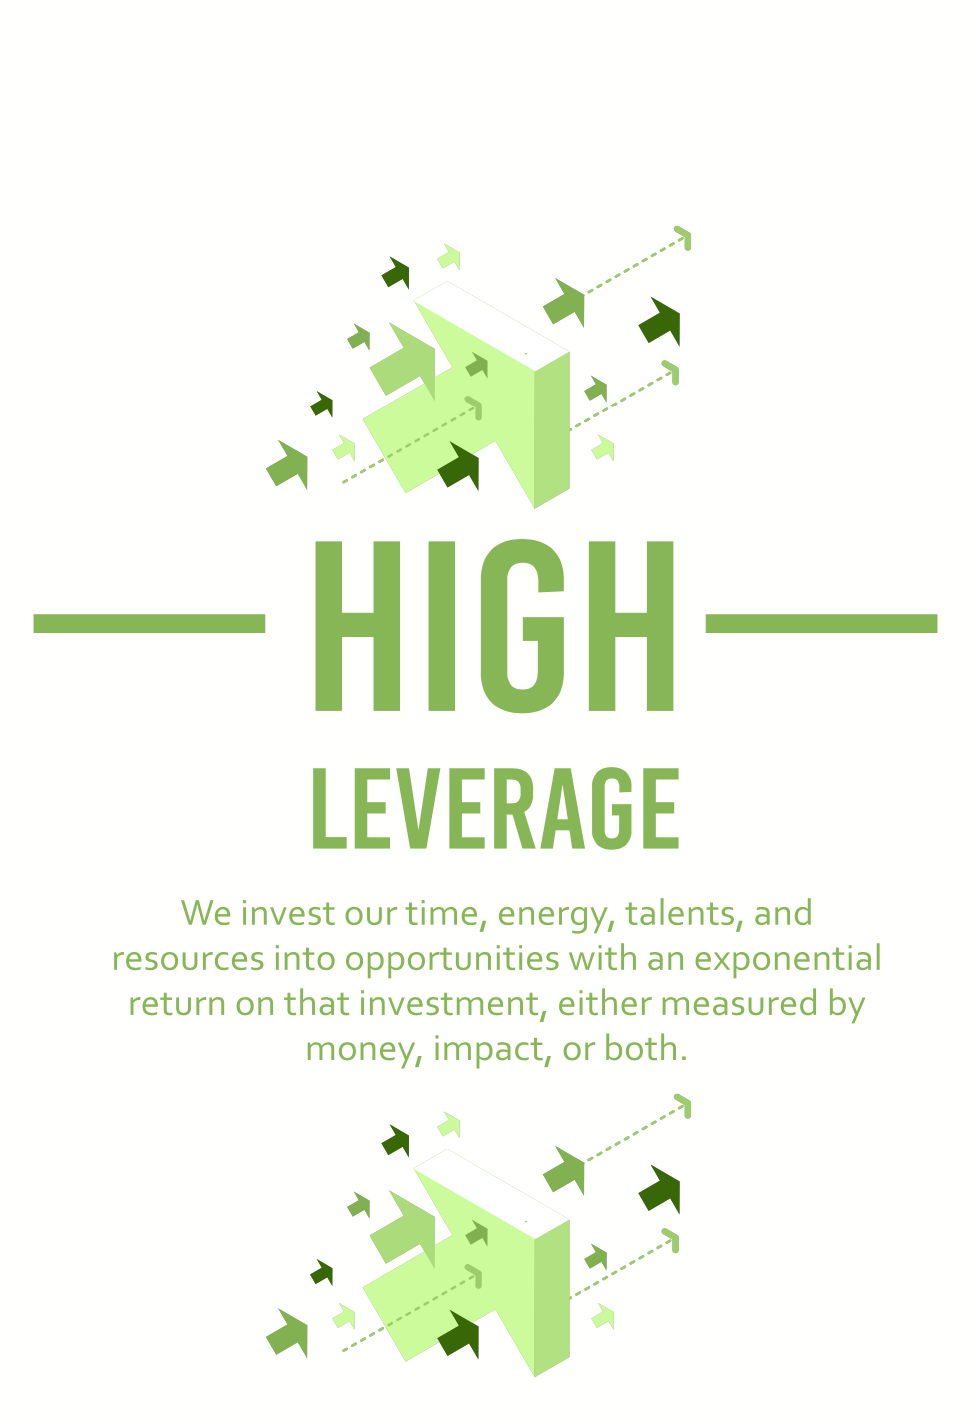 Harvest Wealth Group Core Values- High Leverage